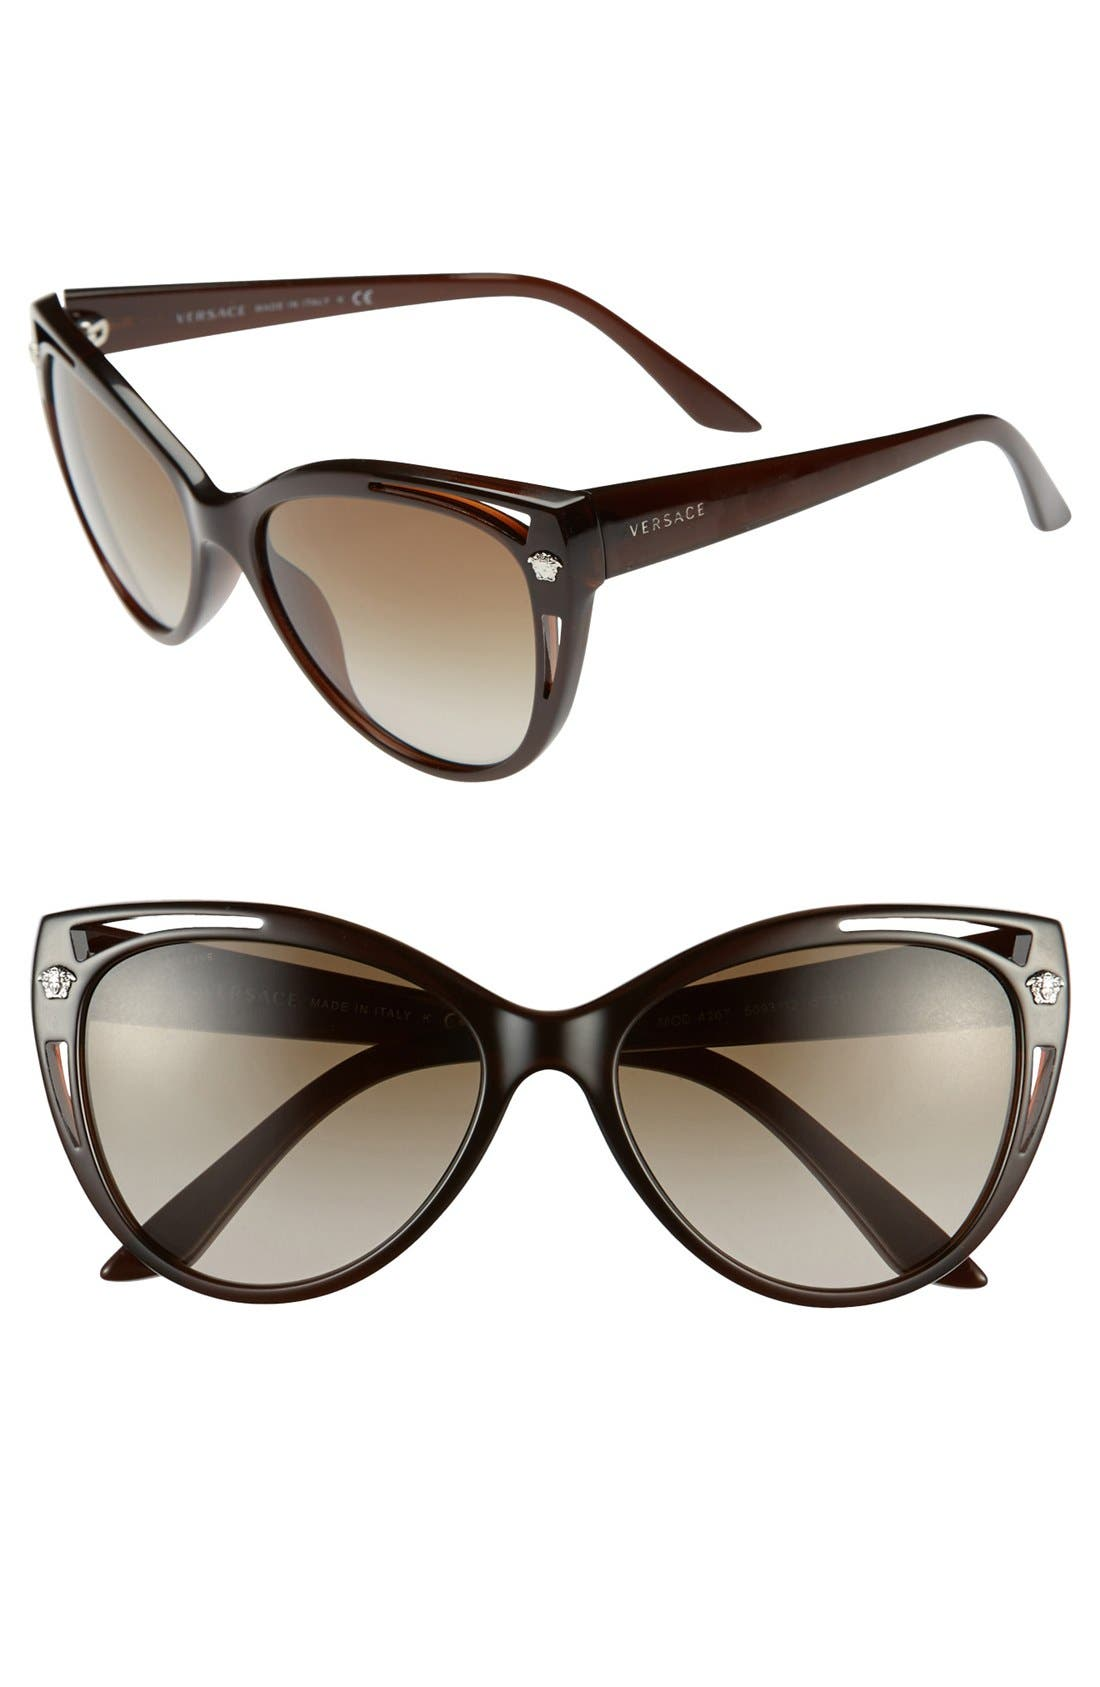 Main Image - Versace 'Pop Chic' 57mm Cat Eye Sunglasses